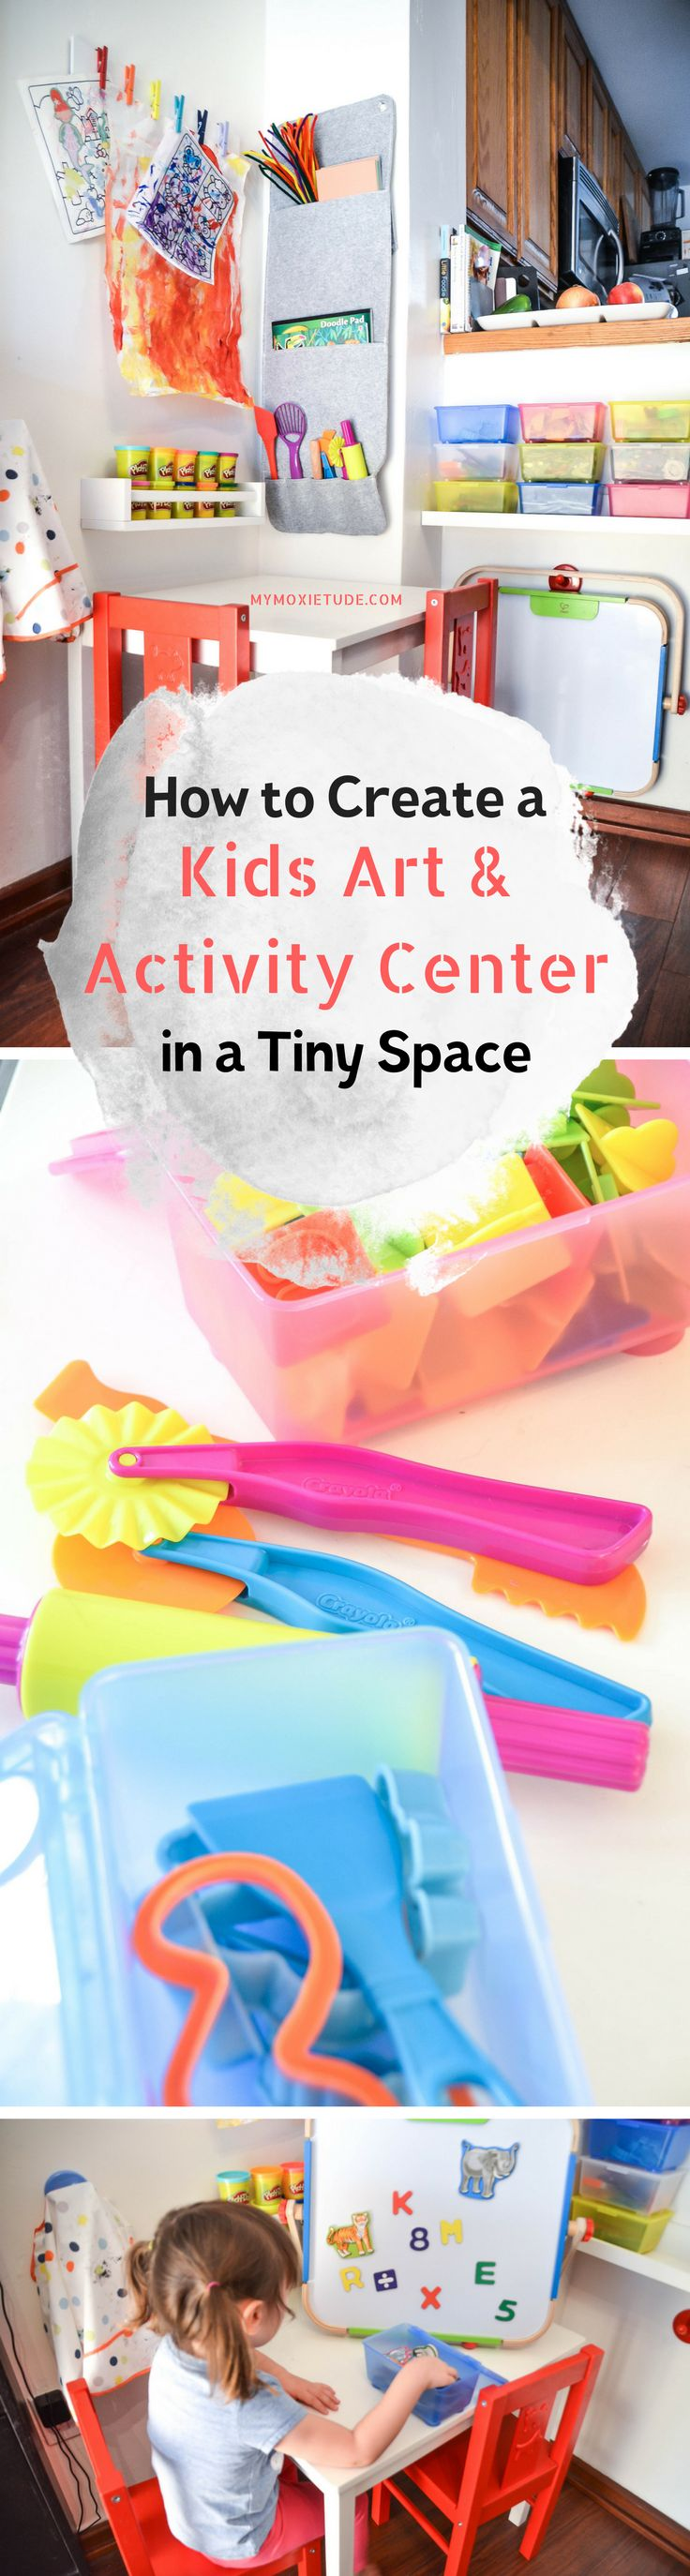 How to Maximize Creativity in a Tiny Space  http://www.mymoxietude.com/creativity-in-a-tiny-space/?utm_campaign=coschedule&utm_source=pinterest&utm_medium=Heather%20%7C%20My%20Moxietude&utm_content=How%20to%20Maximum%20Creativity%20in%20a%20Tiny%20Space  activity, art, space, workspace, table, work table, kid, kids, child, children, toddler, IKEA, Target, Hape, Crayola, crayons, Color Wonder markers, Play-Doh